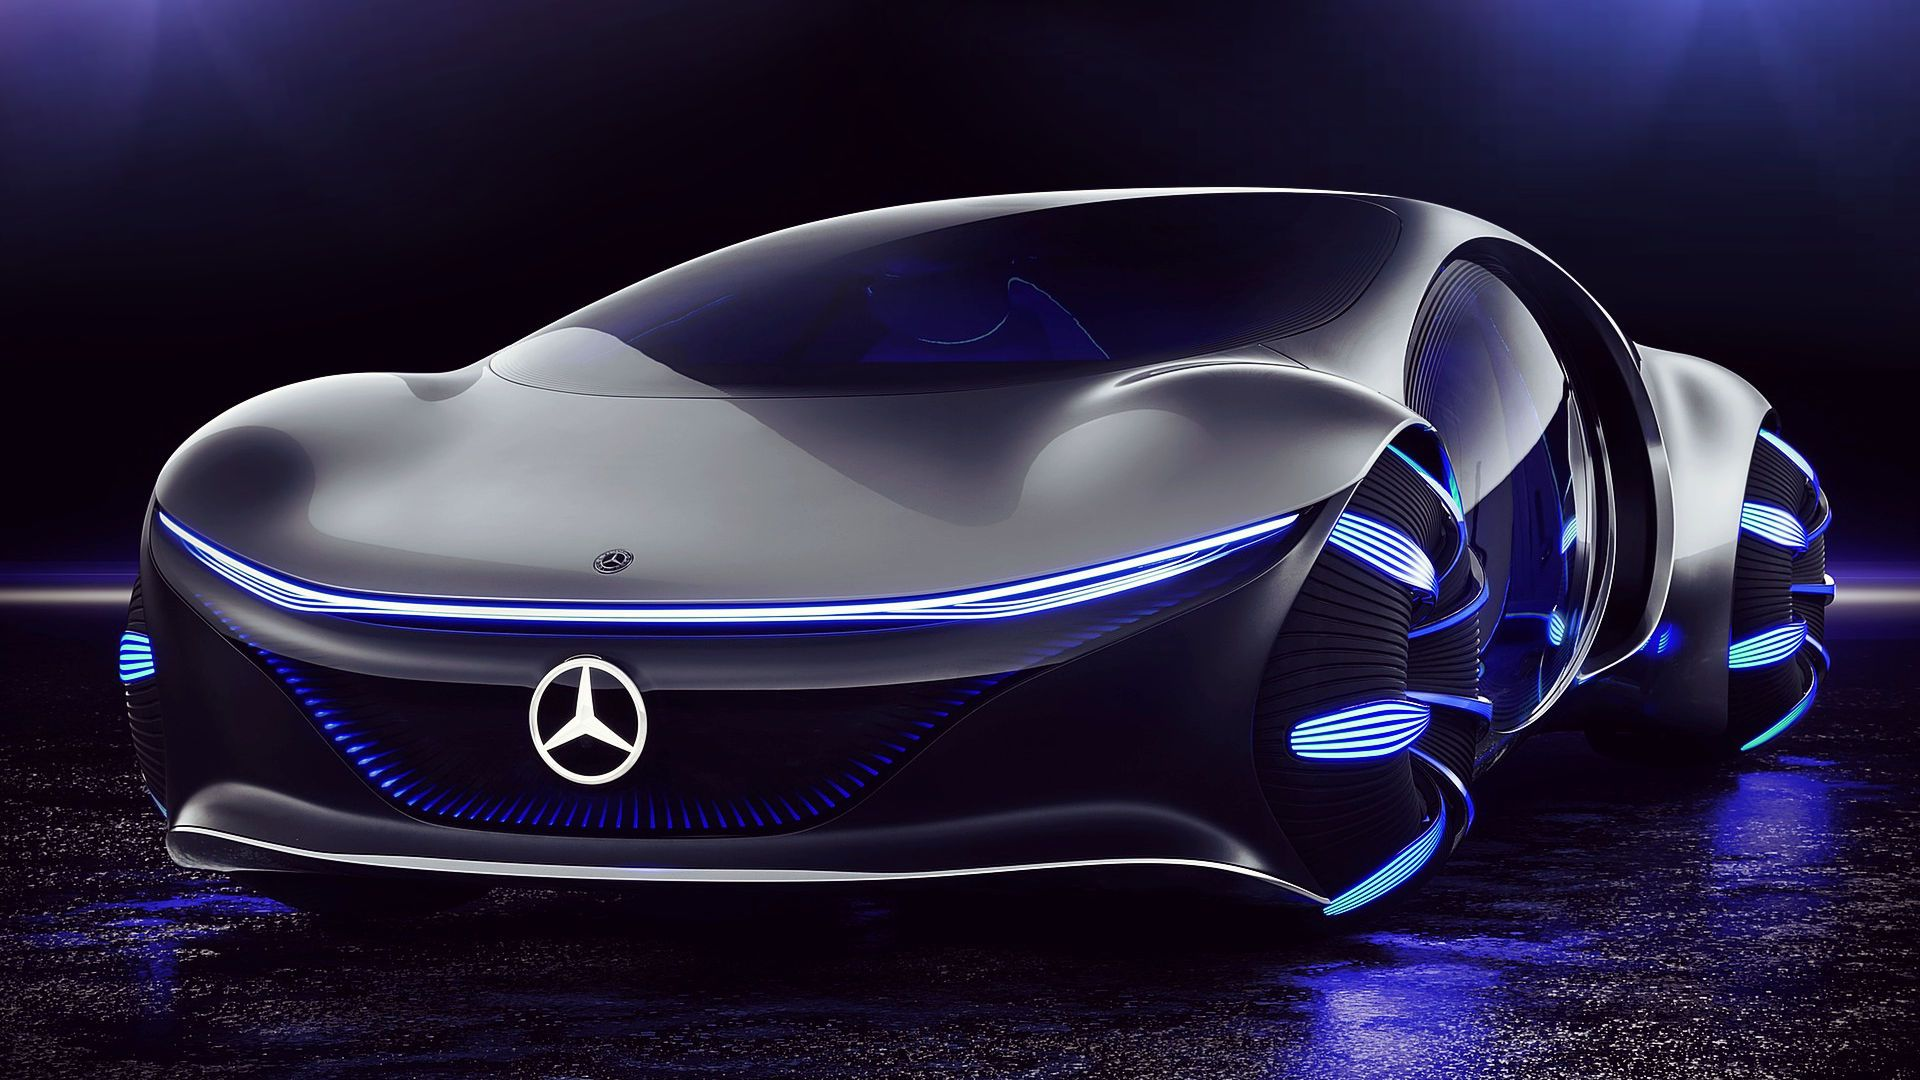 Mercedes Benz Vision Avtr Concept 2020 Specs Wallpaper In 2020 Mercedes Benz Super Luxury Cars Futuristic Cars